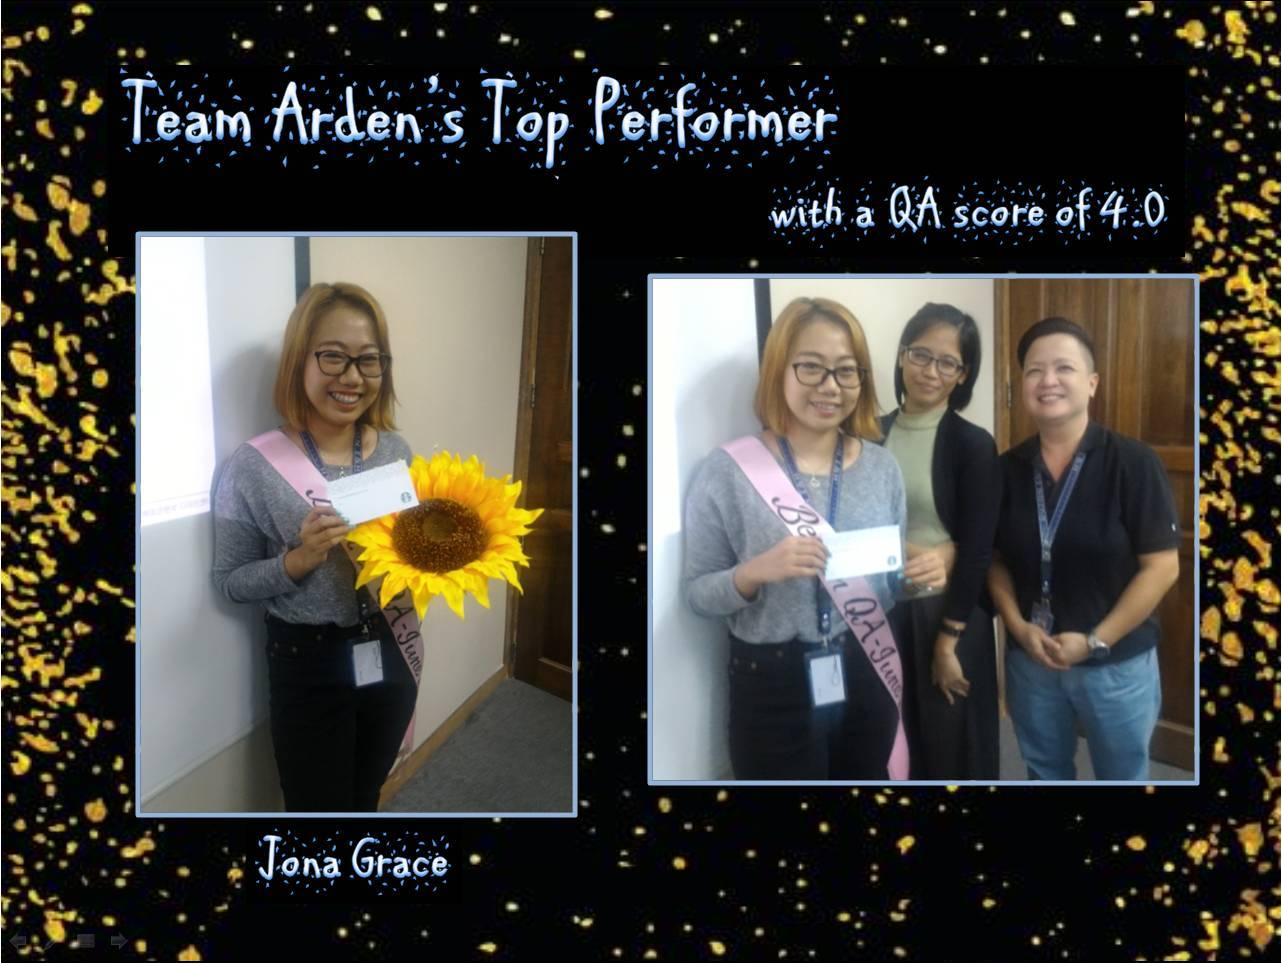 Team Arden_s Team Performance Meeting for June